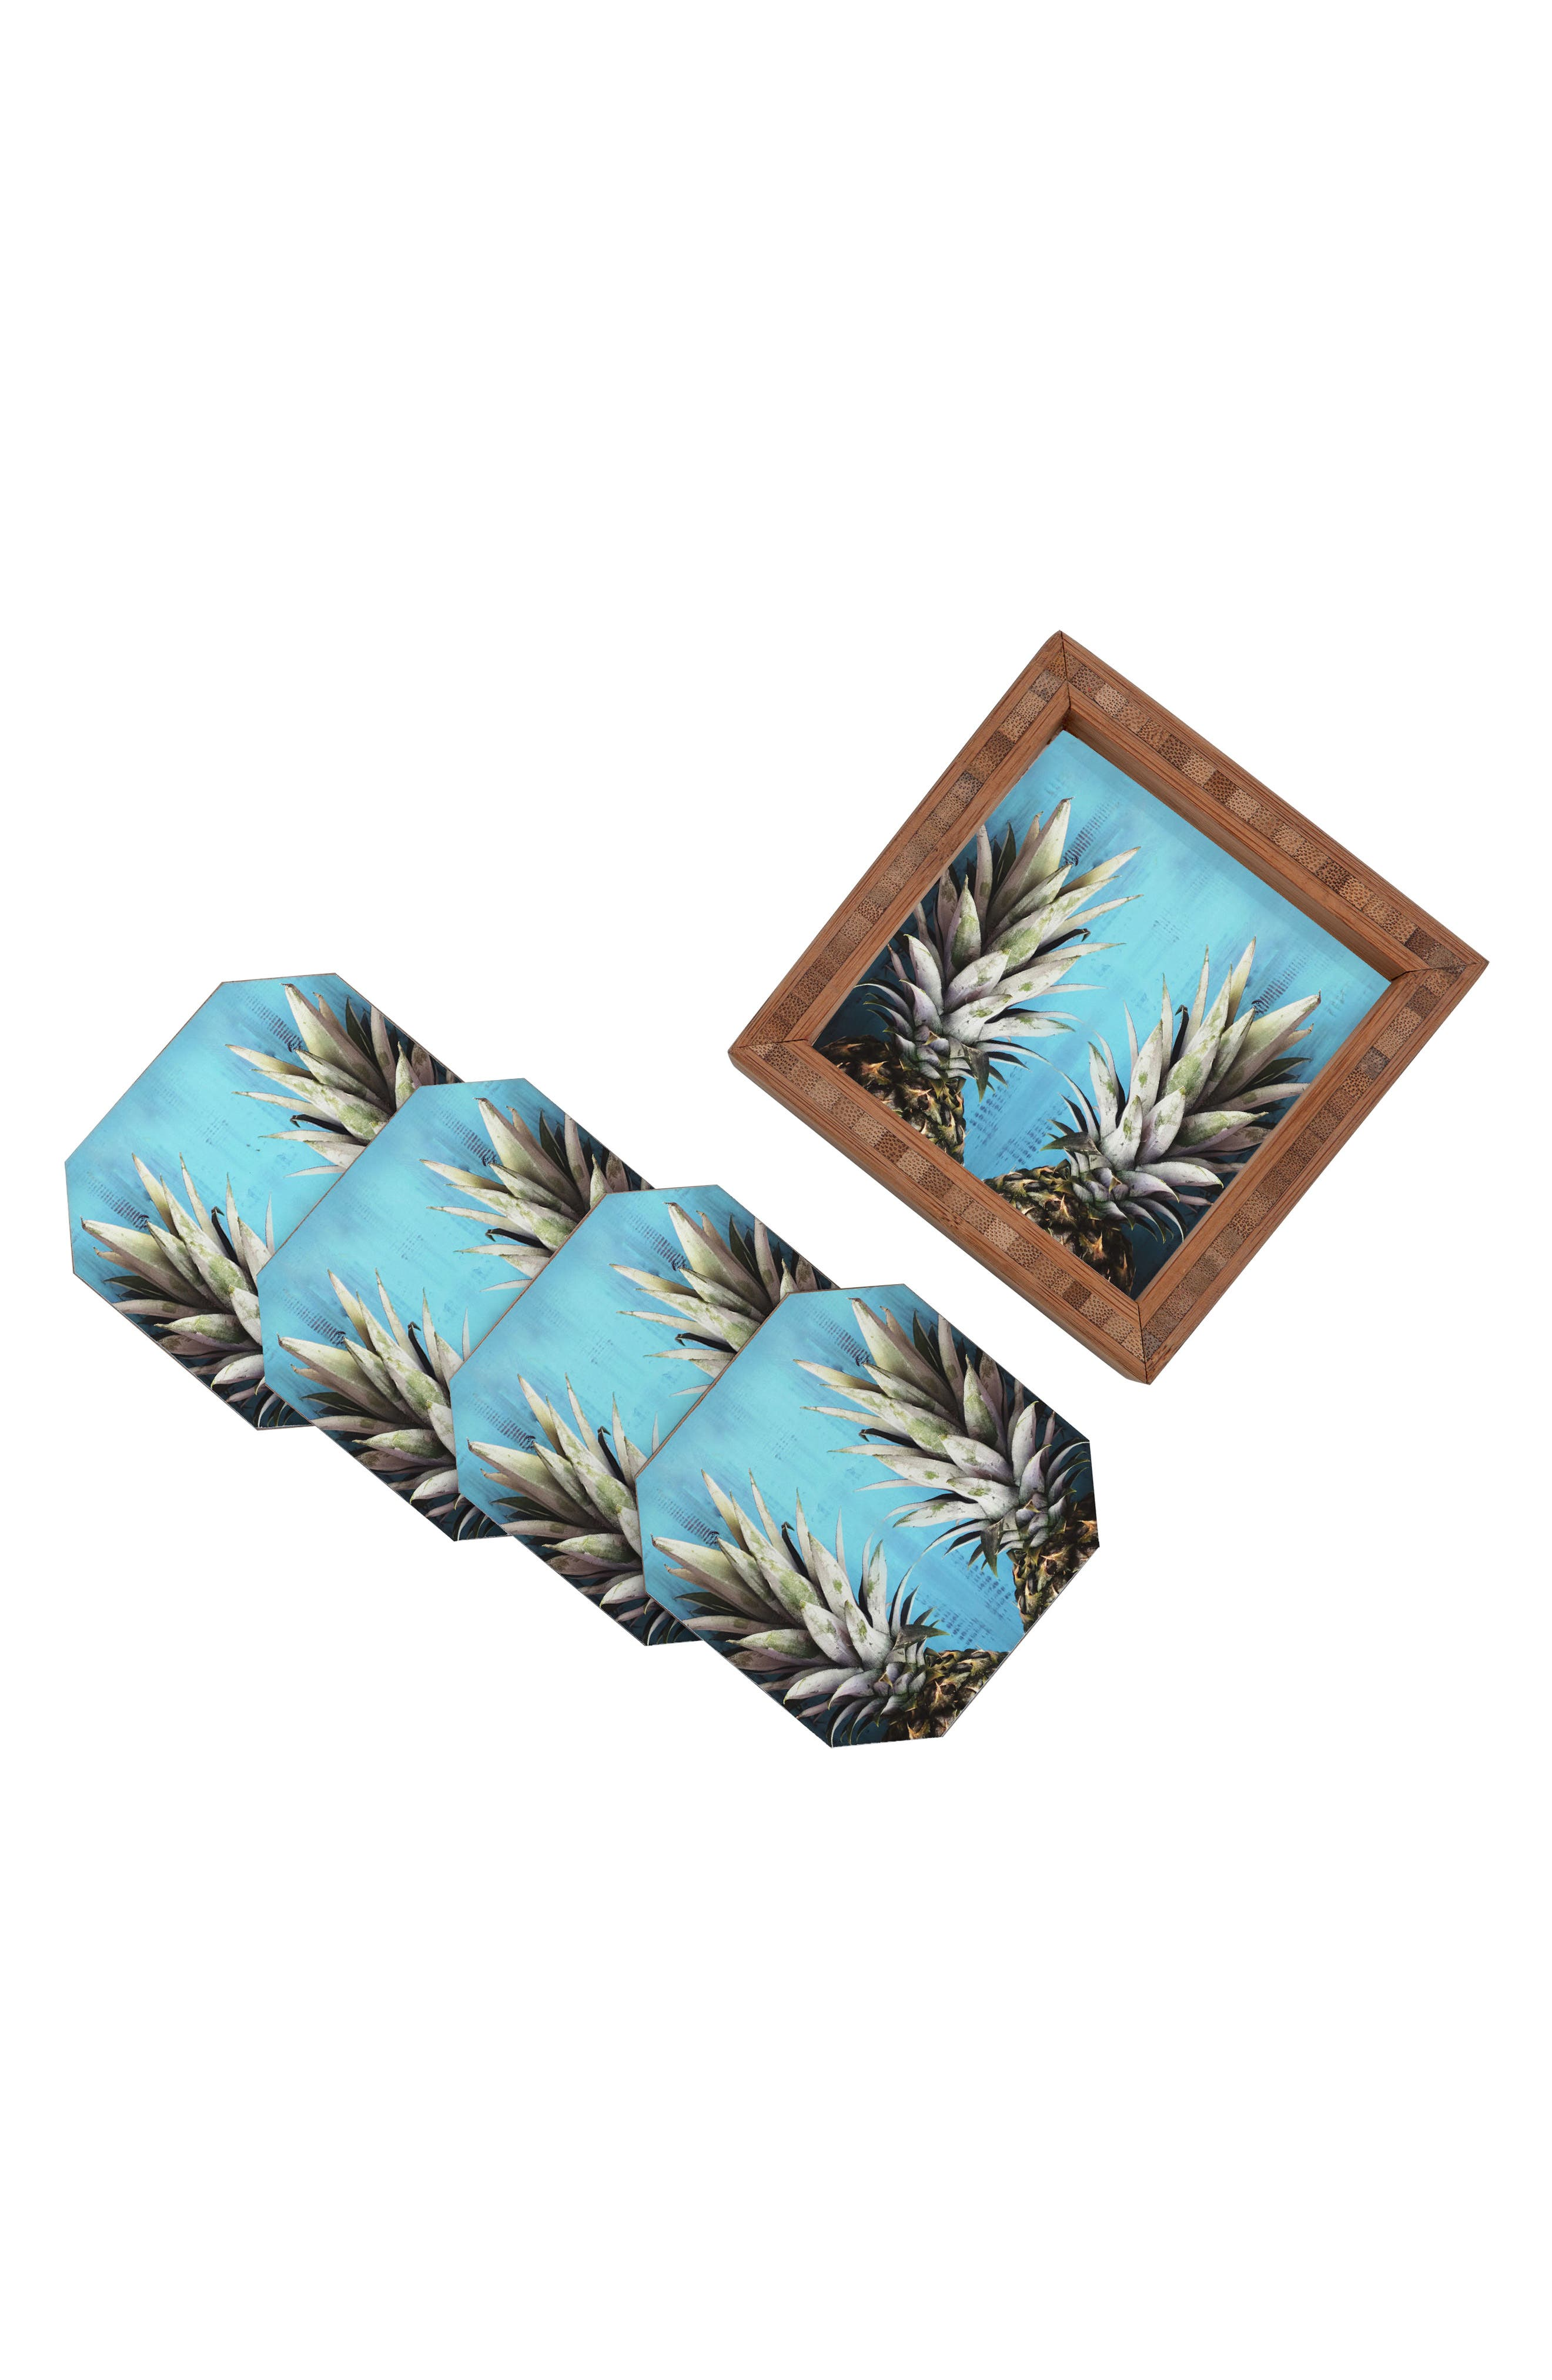 How About Them Pineapples Coaster Set of 4 Coasters,                             Main thumbnail 1, color,